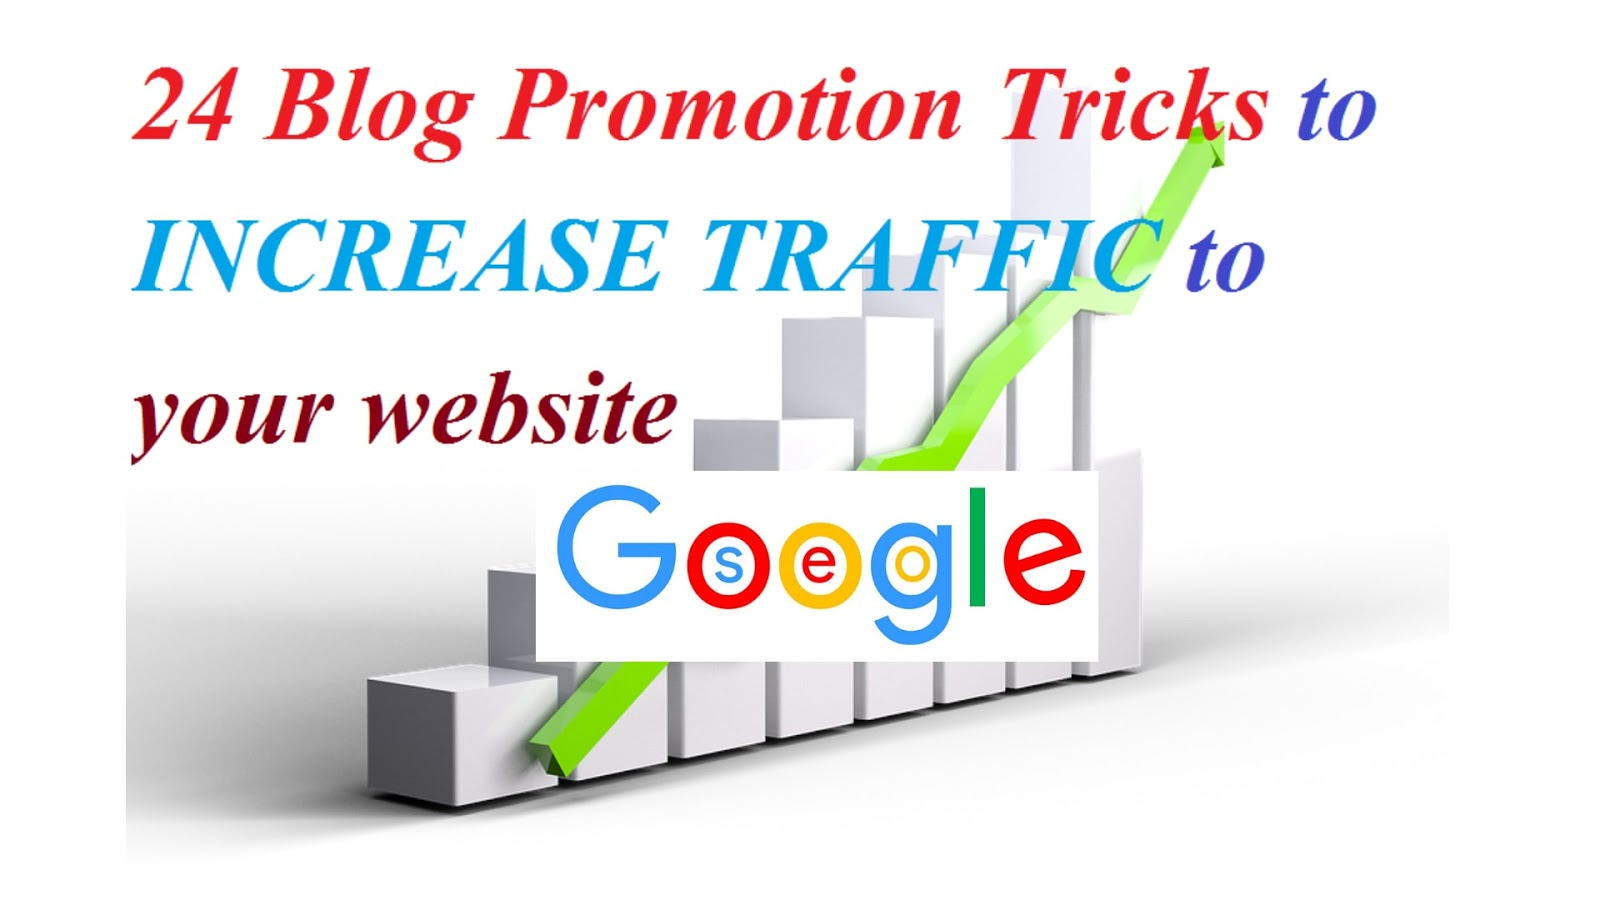 drive-traffic-to-website-blog